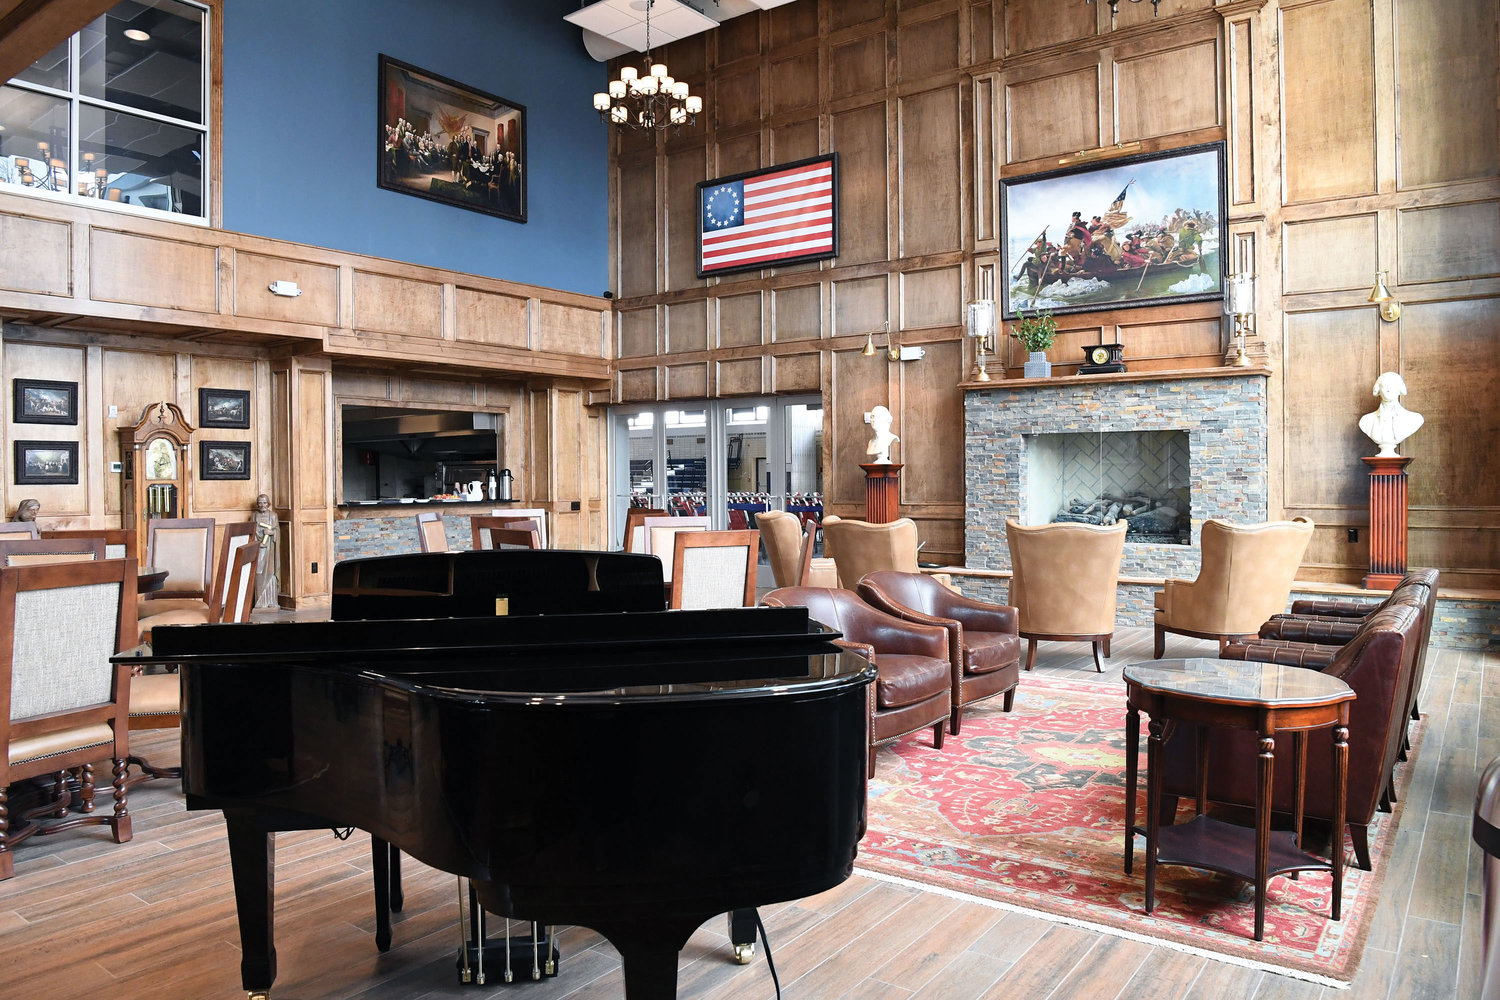 A fireplace, piano, and paintings and décor of historical themes are part of the student center lounge.